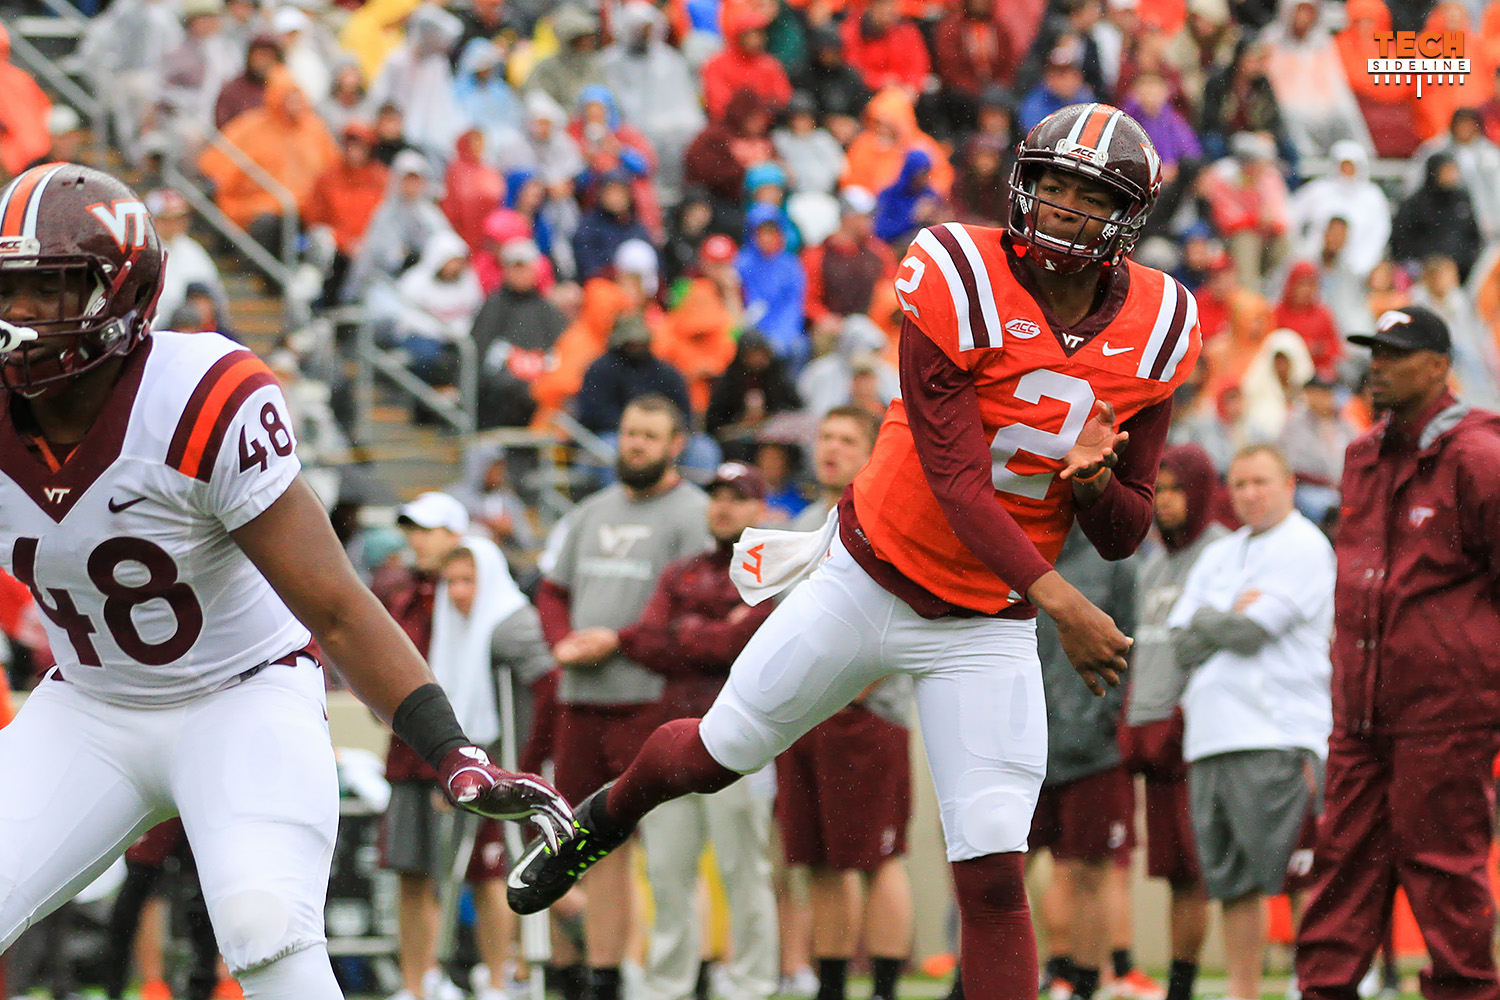 2017.04.22. Spring Game at Virginia Tech (Hokies). Lane Stadium, Blacksburg, VA. VT Head Coach: Justin Fuente.